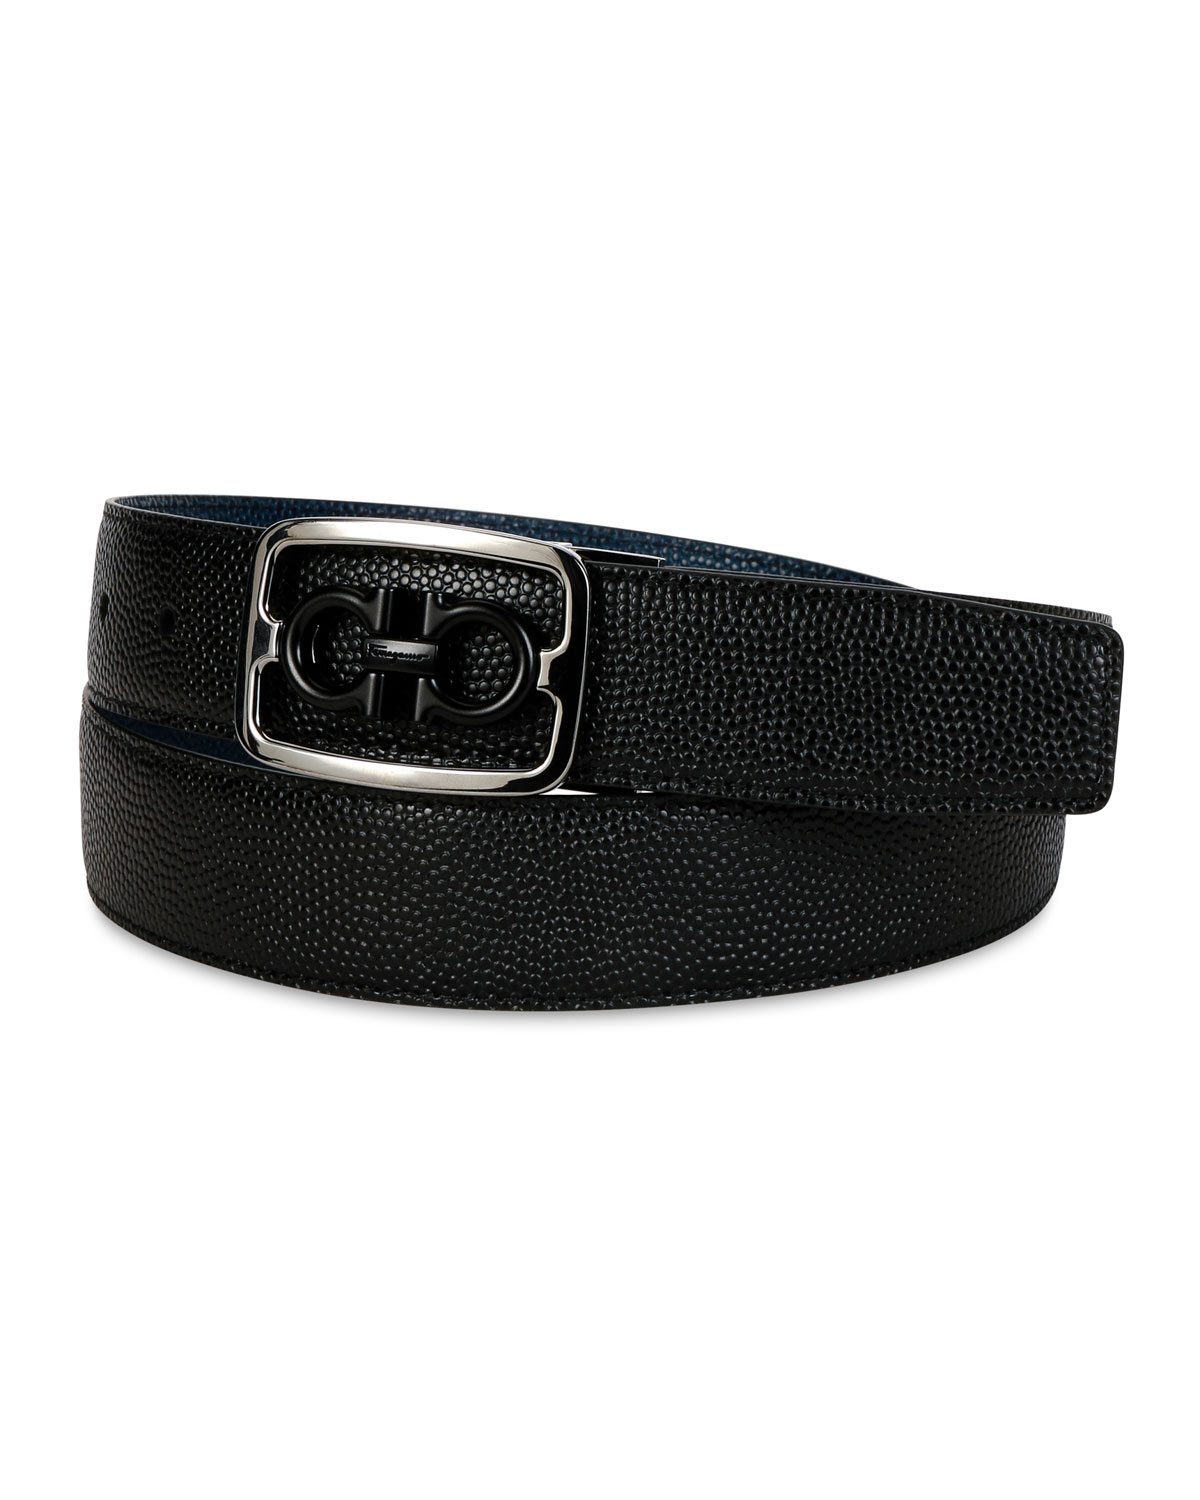 Salvatore Ferragamo  MEN'S REVERSIBLE GANCINI BUCKLE LEATHER BELT